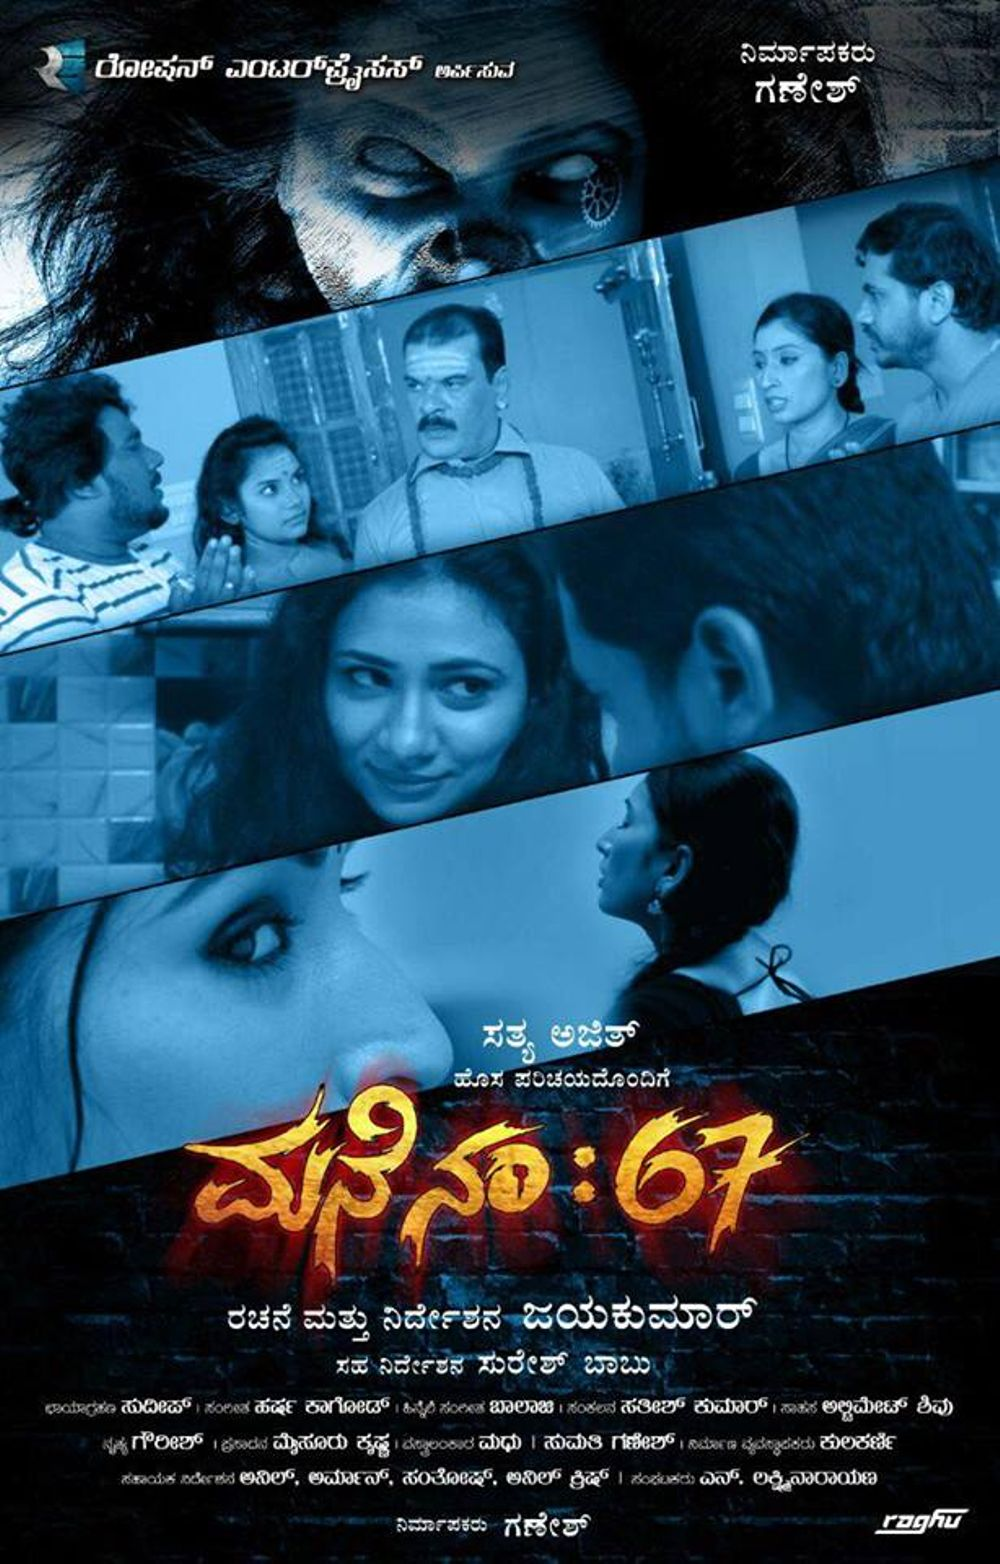 Mane No 67 Movie Review Kannada Movie Review